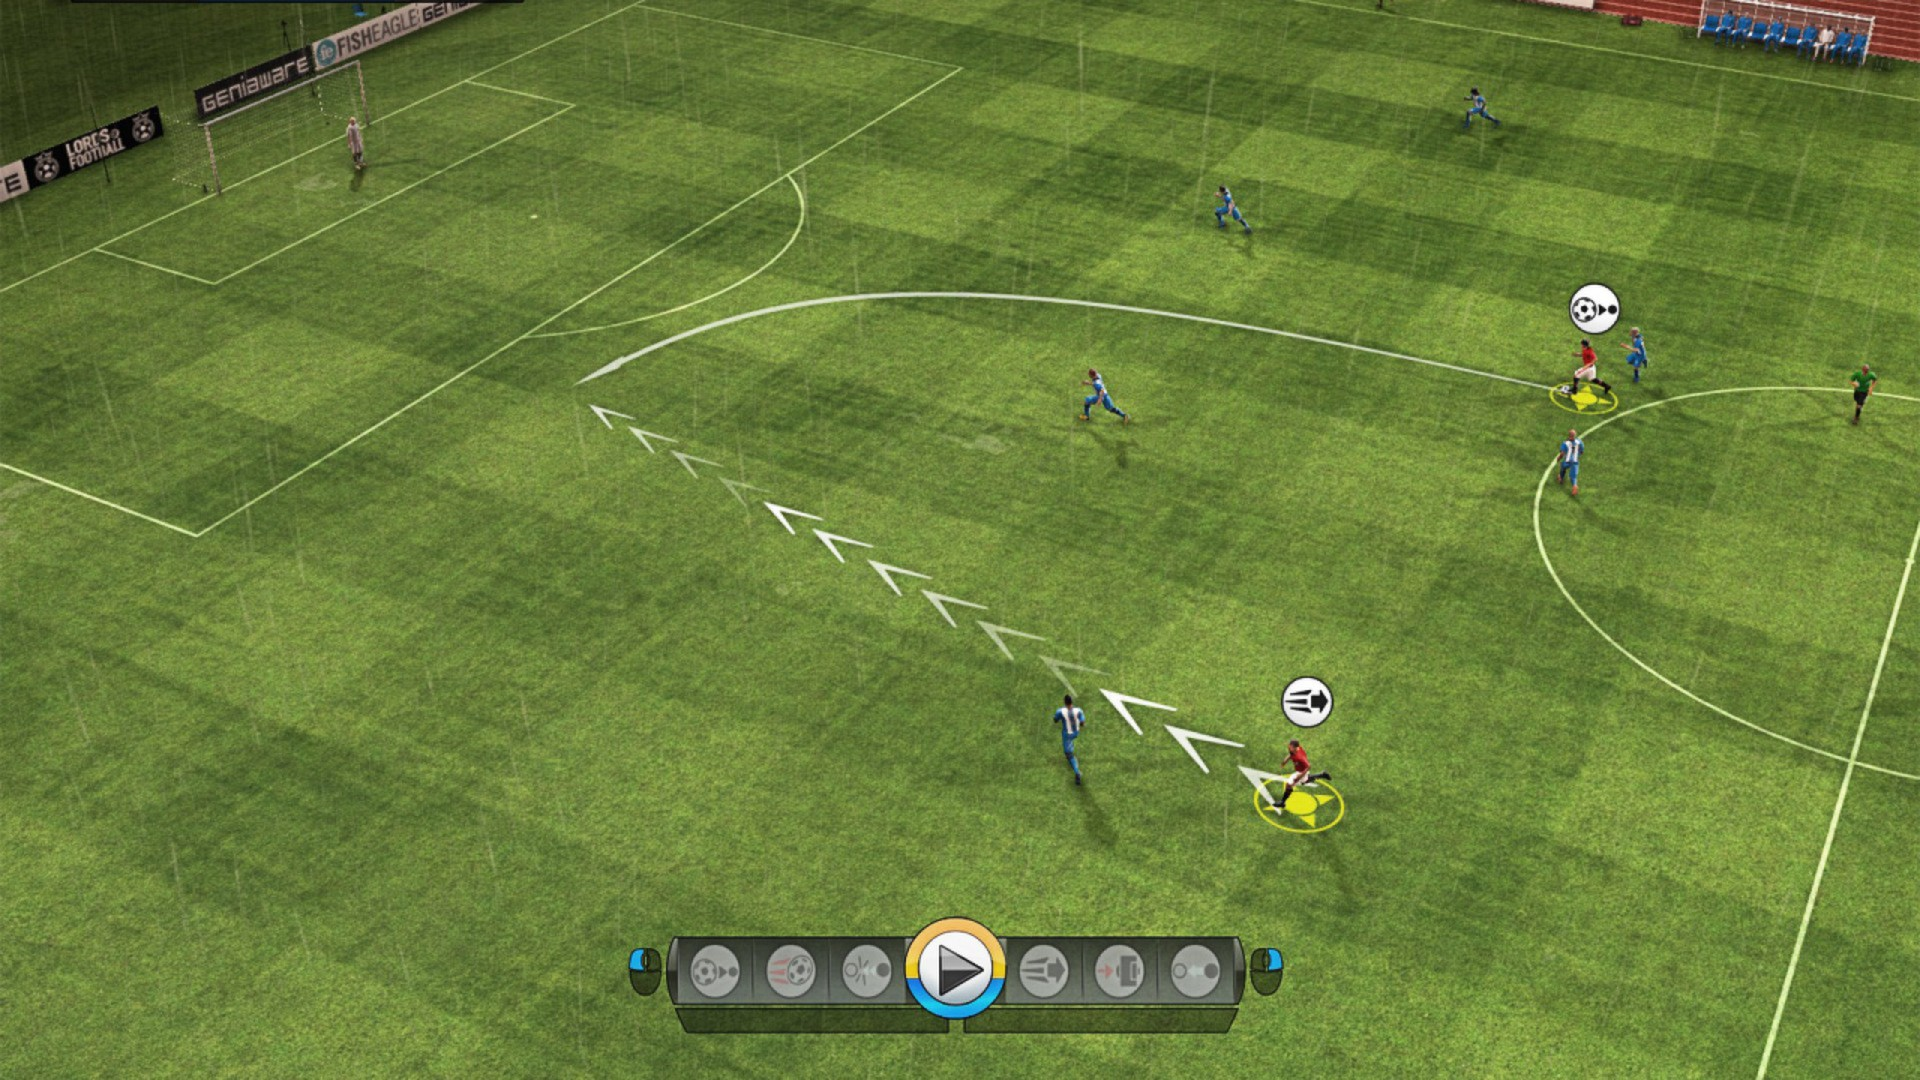 Download Soccer Game For Pc